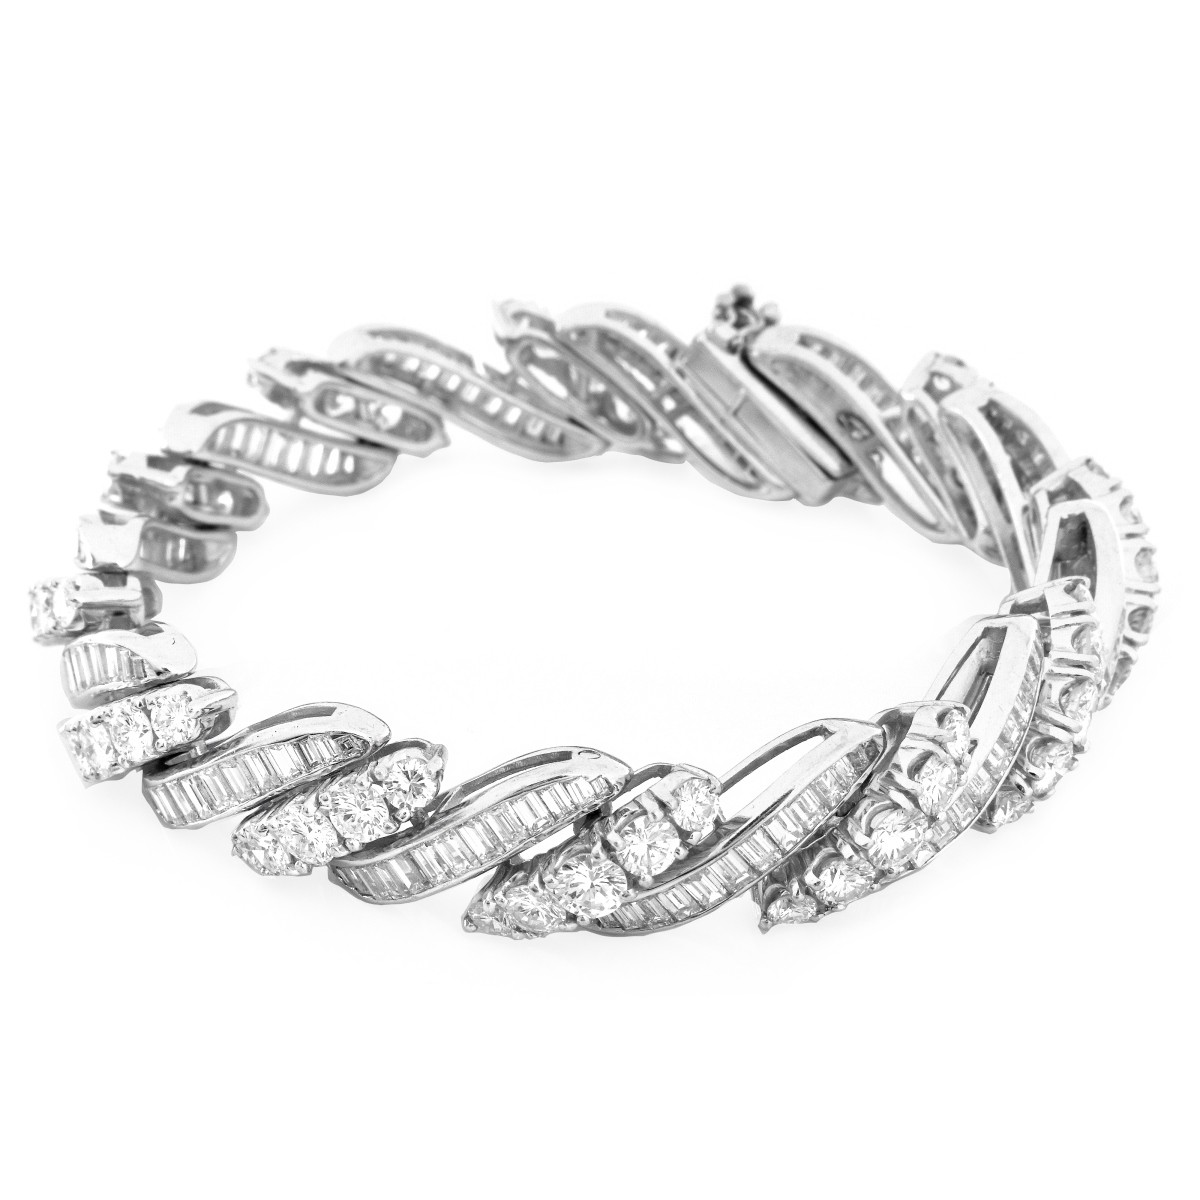 22.0ct TW Diamond and Platinum Bracelet